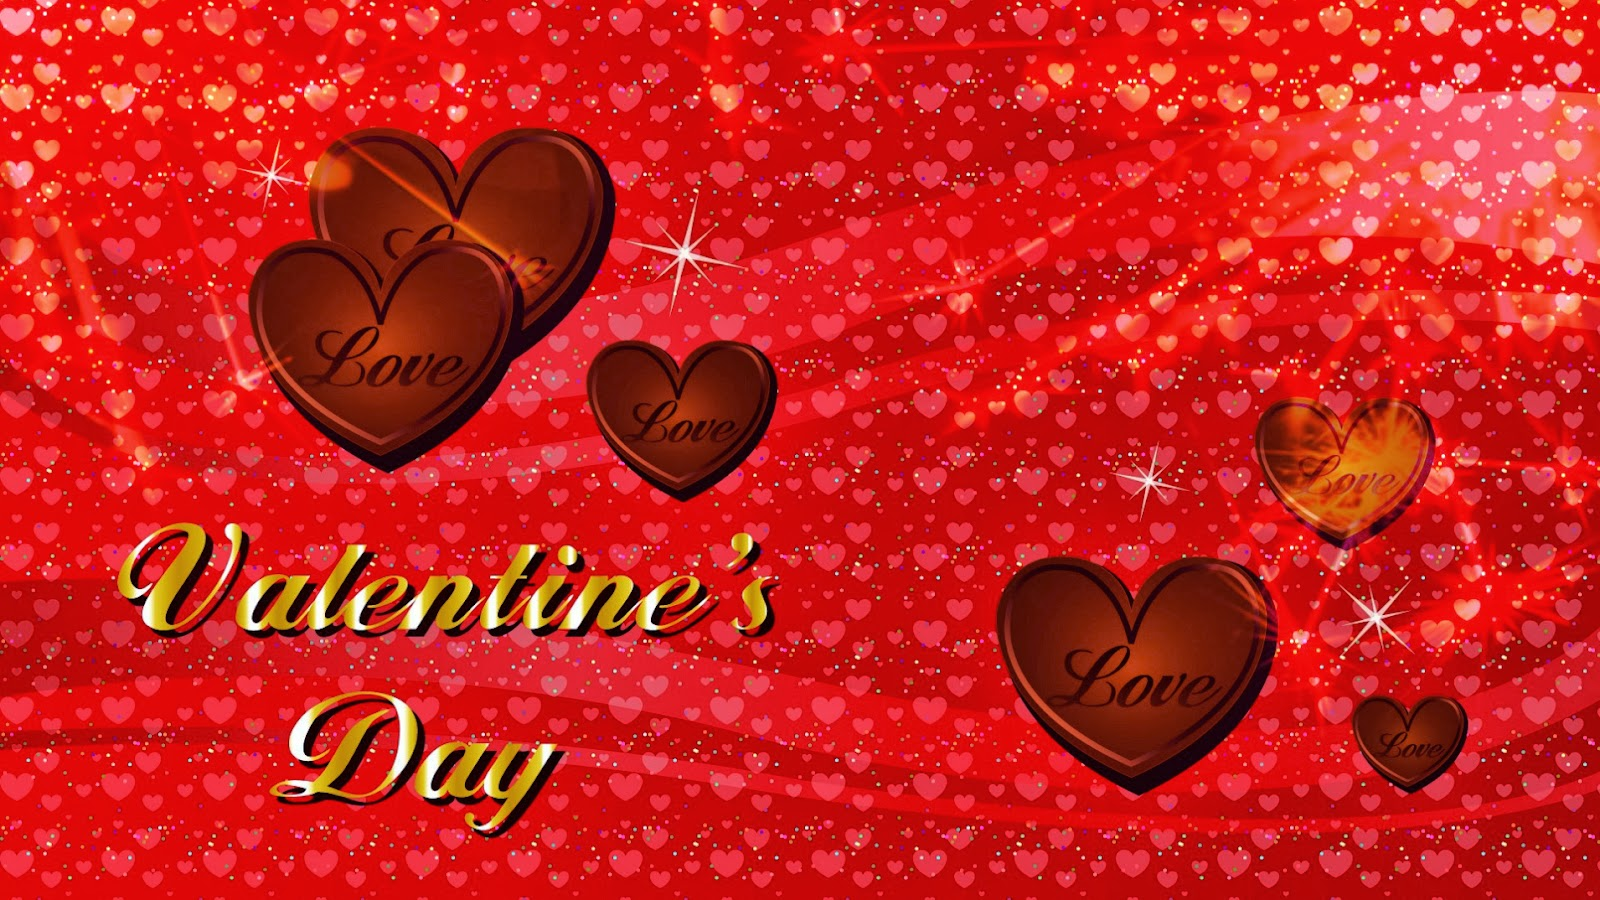 Happy Valentine's day cell phone wallpapers